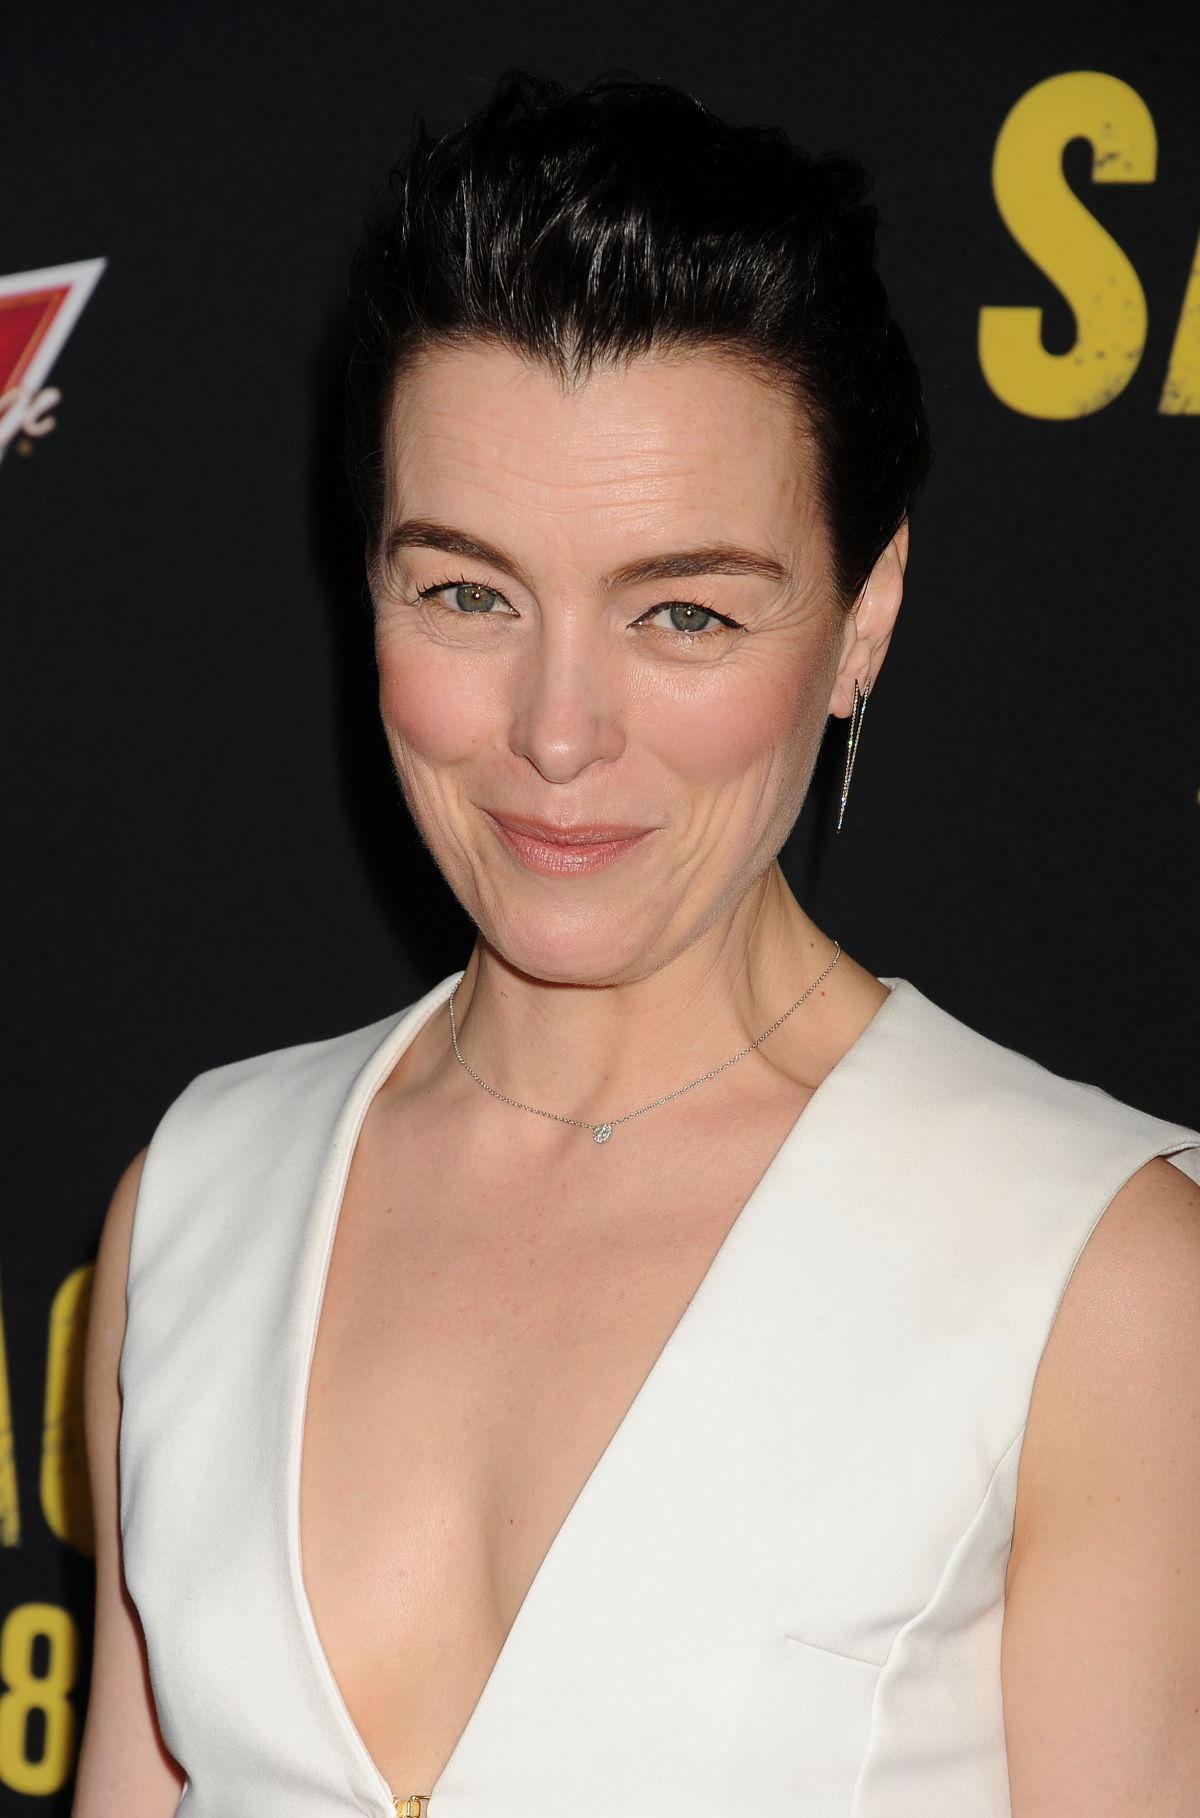 Pictures Olivia Williams nudes (83 foto and video), Topless, Bikini, Feet, in bikini 2018